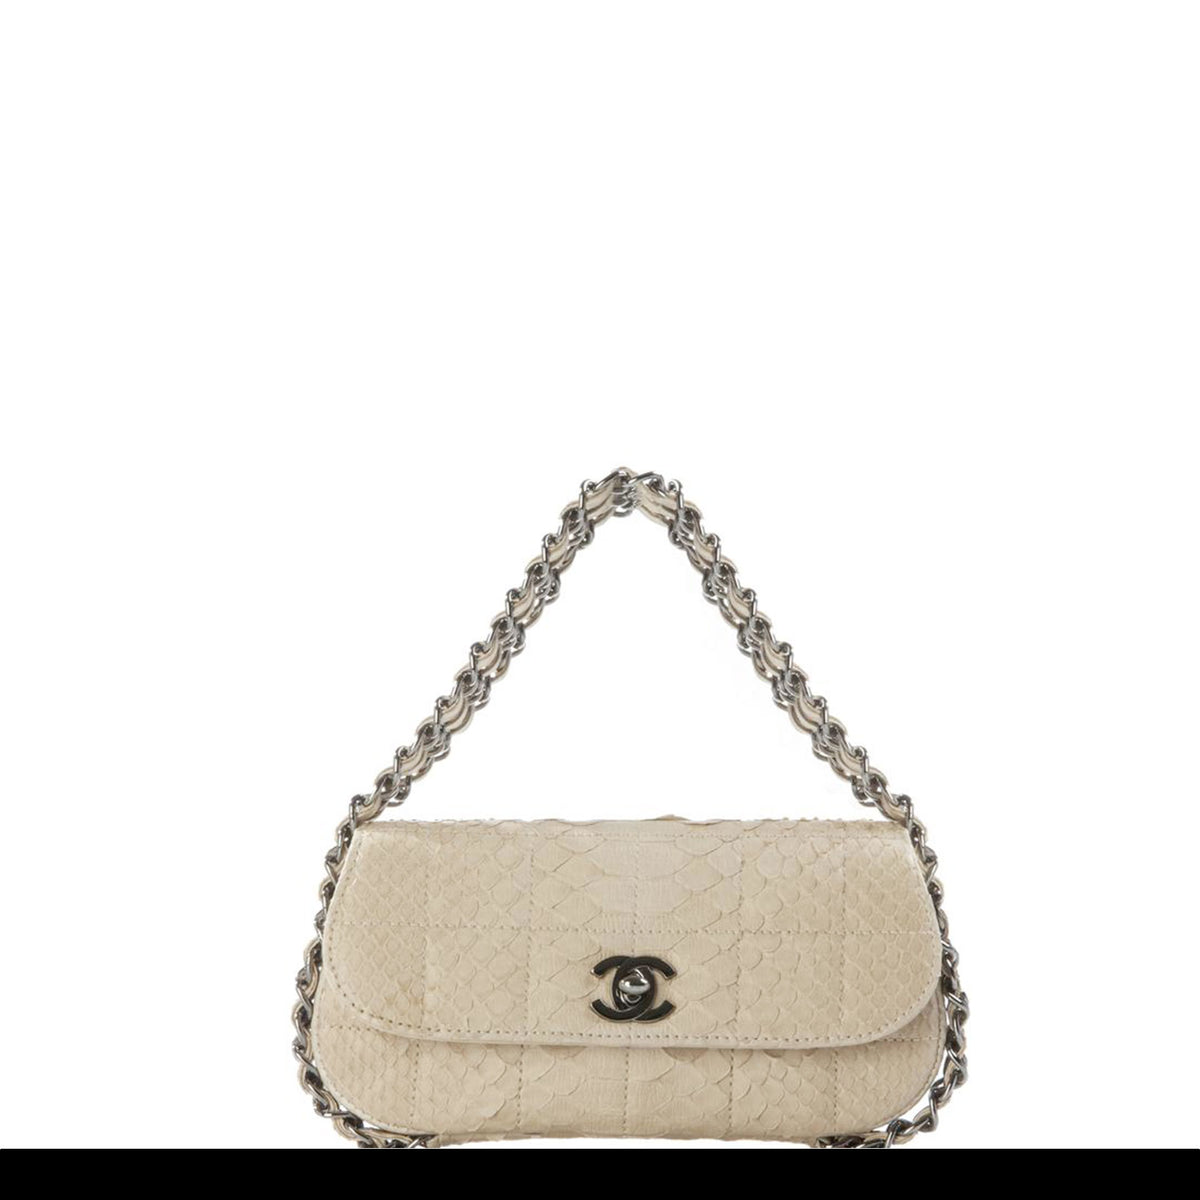 83767c029f62 Chanel Micro Mini Beige Python Chain Around Clutch Flap – House of Carver